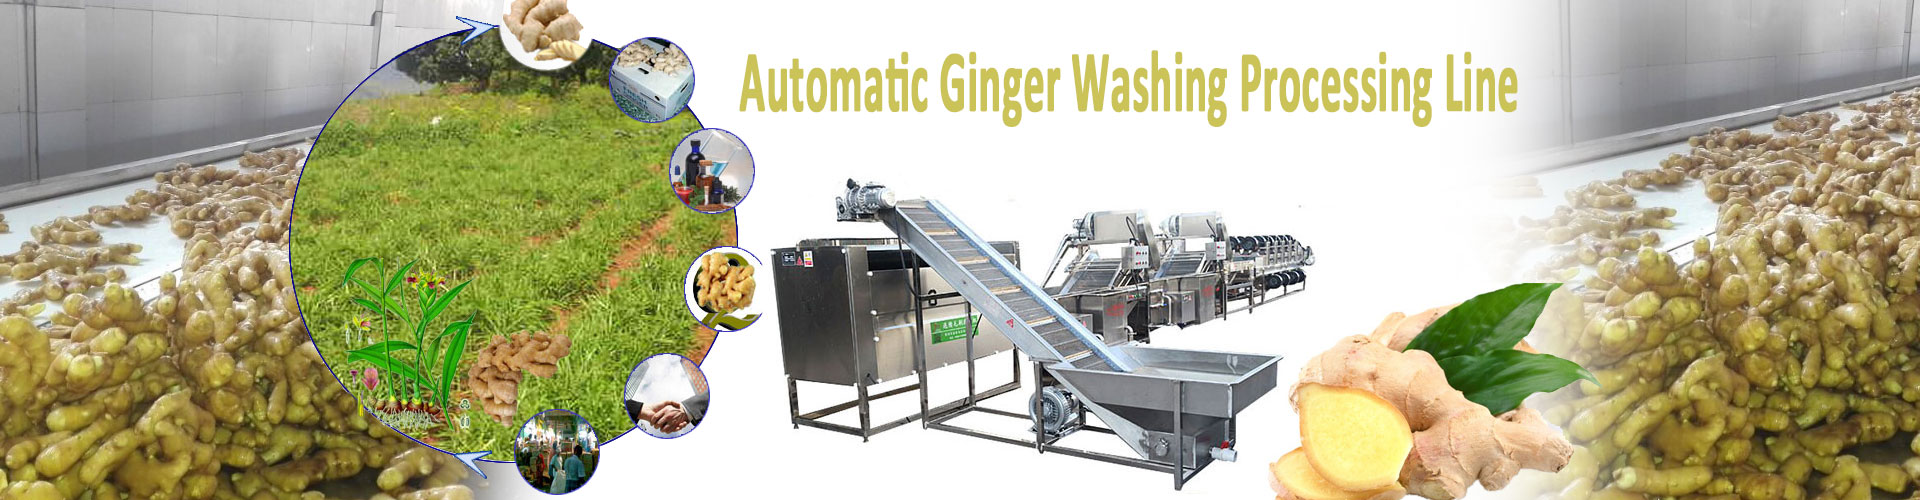 3ginger washing processing line